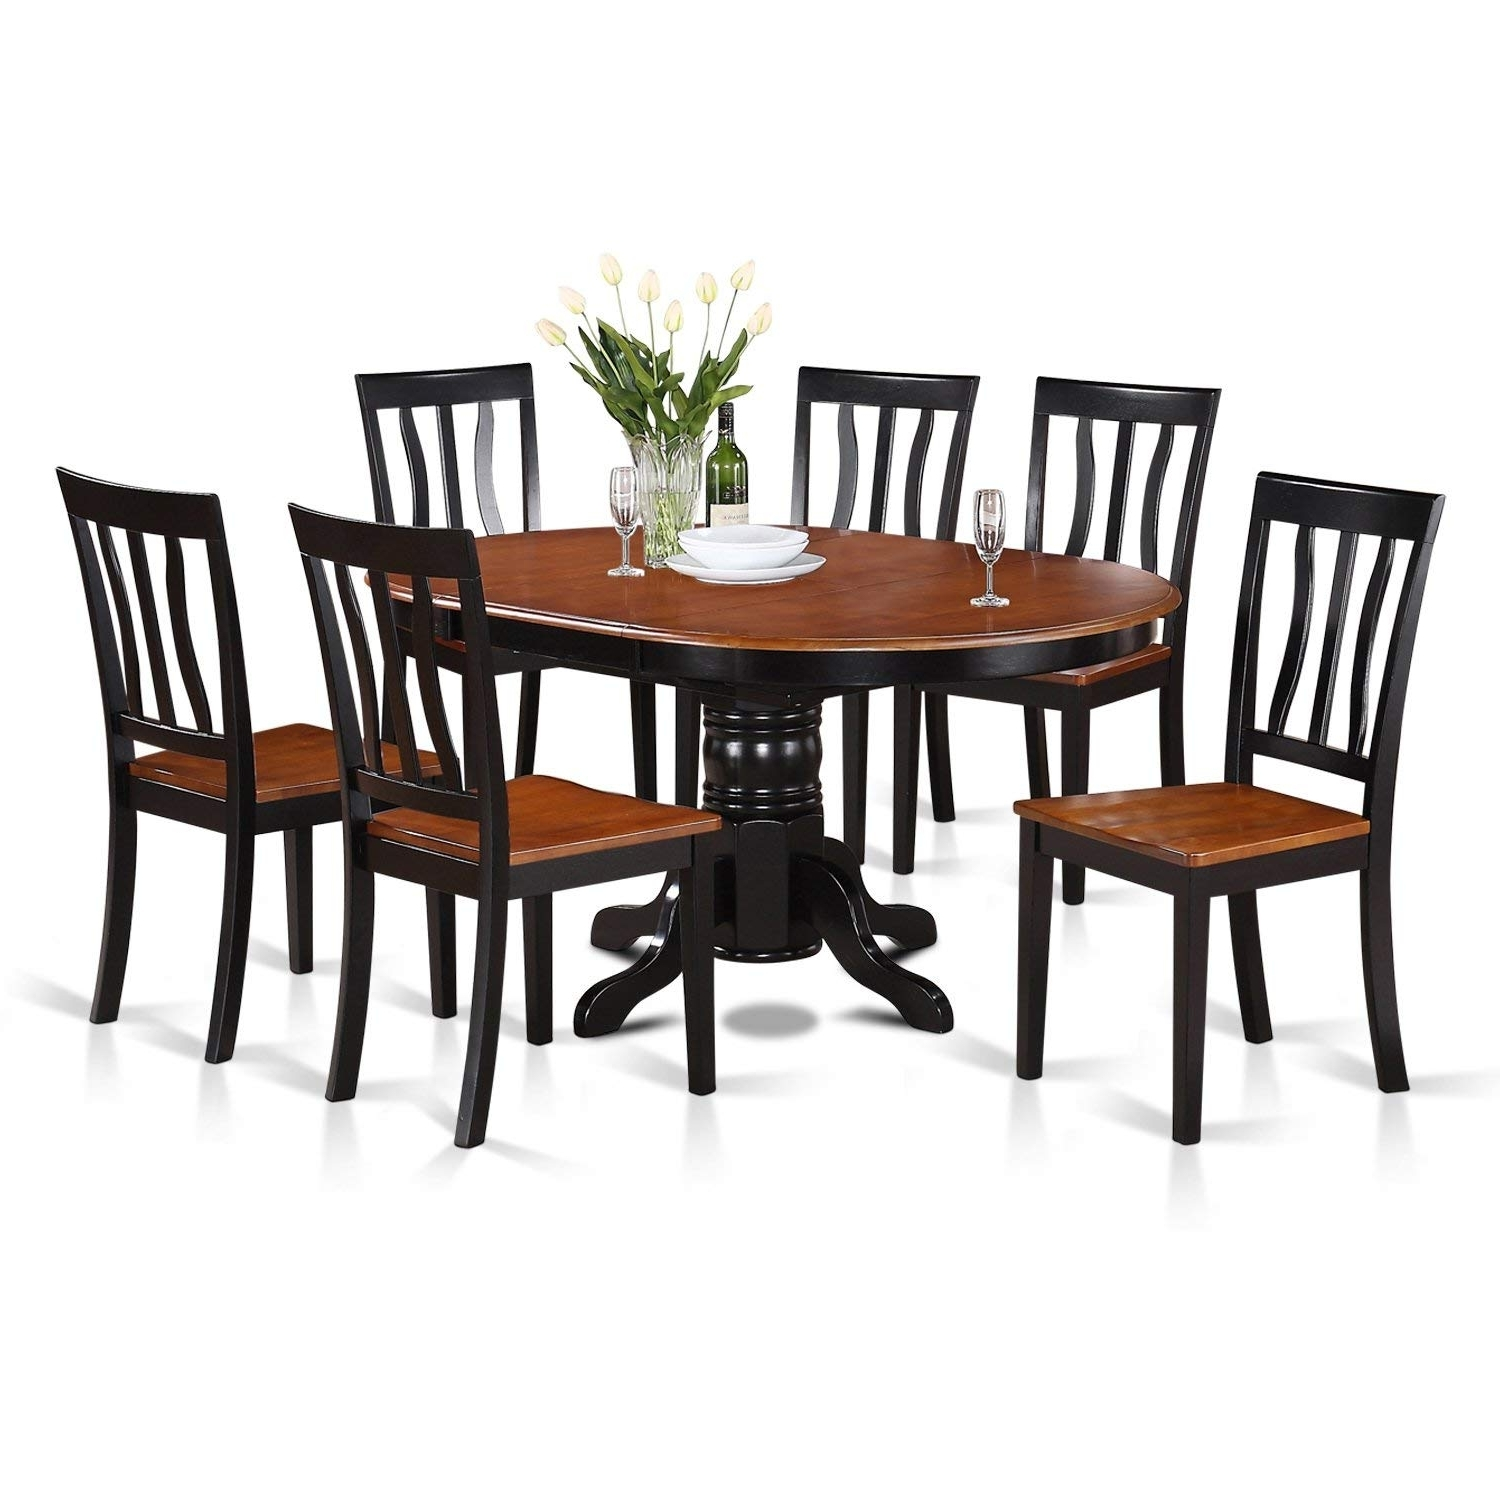 Latest Craftsman 5 Piece Round Dining Sets With Side Chairs Inside Amazon: East West Furniture Avat7 Blk W 7 Piece Dining Table Set (View 1 of 25)